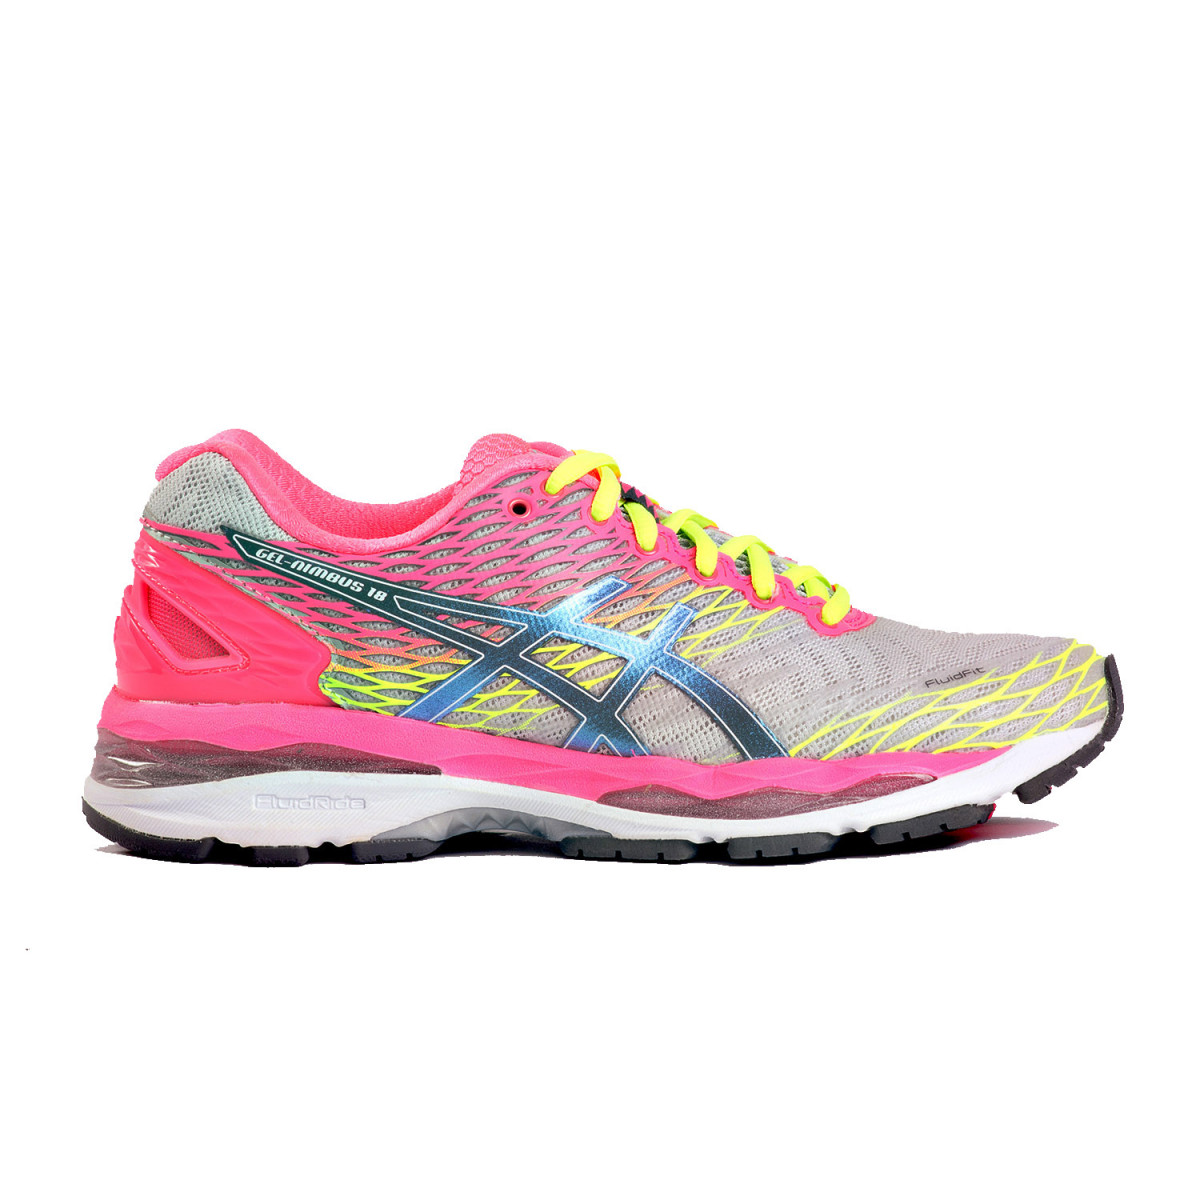 Zapatillas Asics Gel Nimbus 18